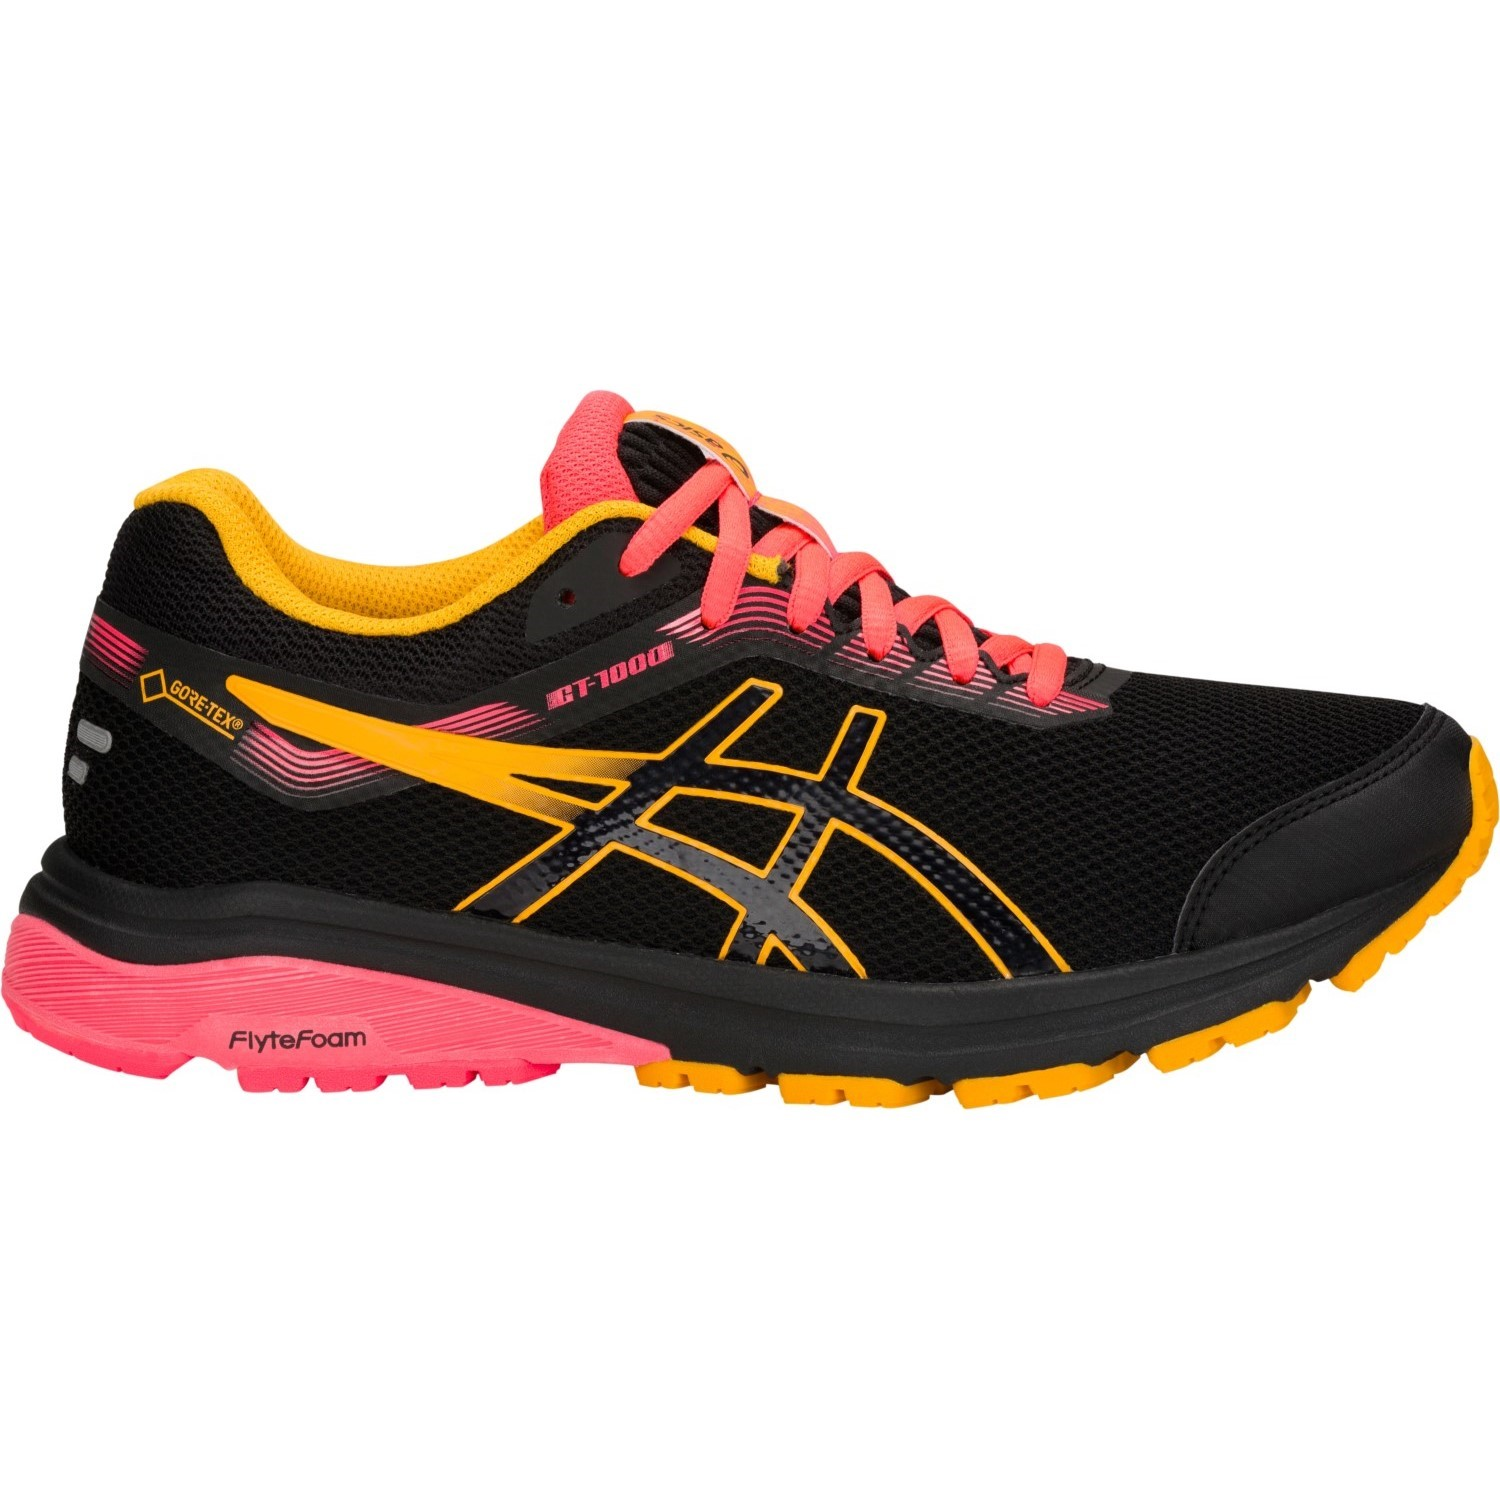 061c89e0eaba9 Asics GT-1000 7 GTX - Womens Running Shoes - Black/Amber/Pink ...